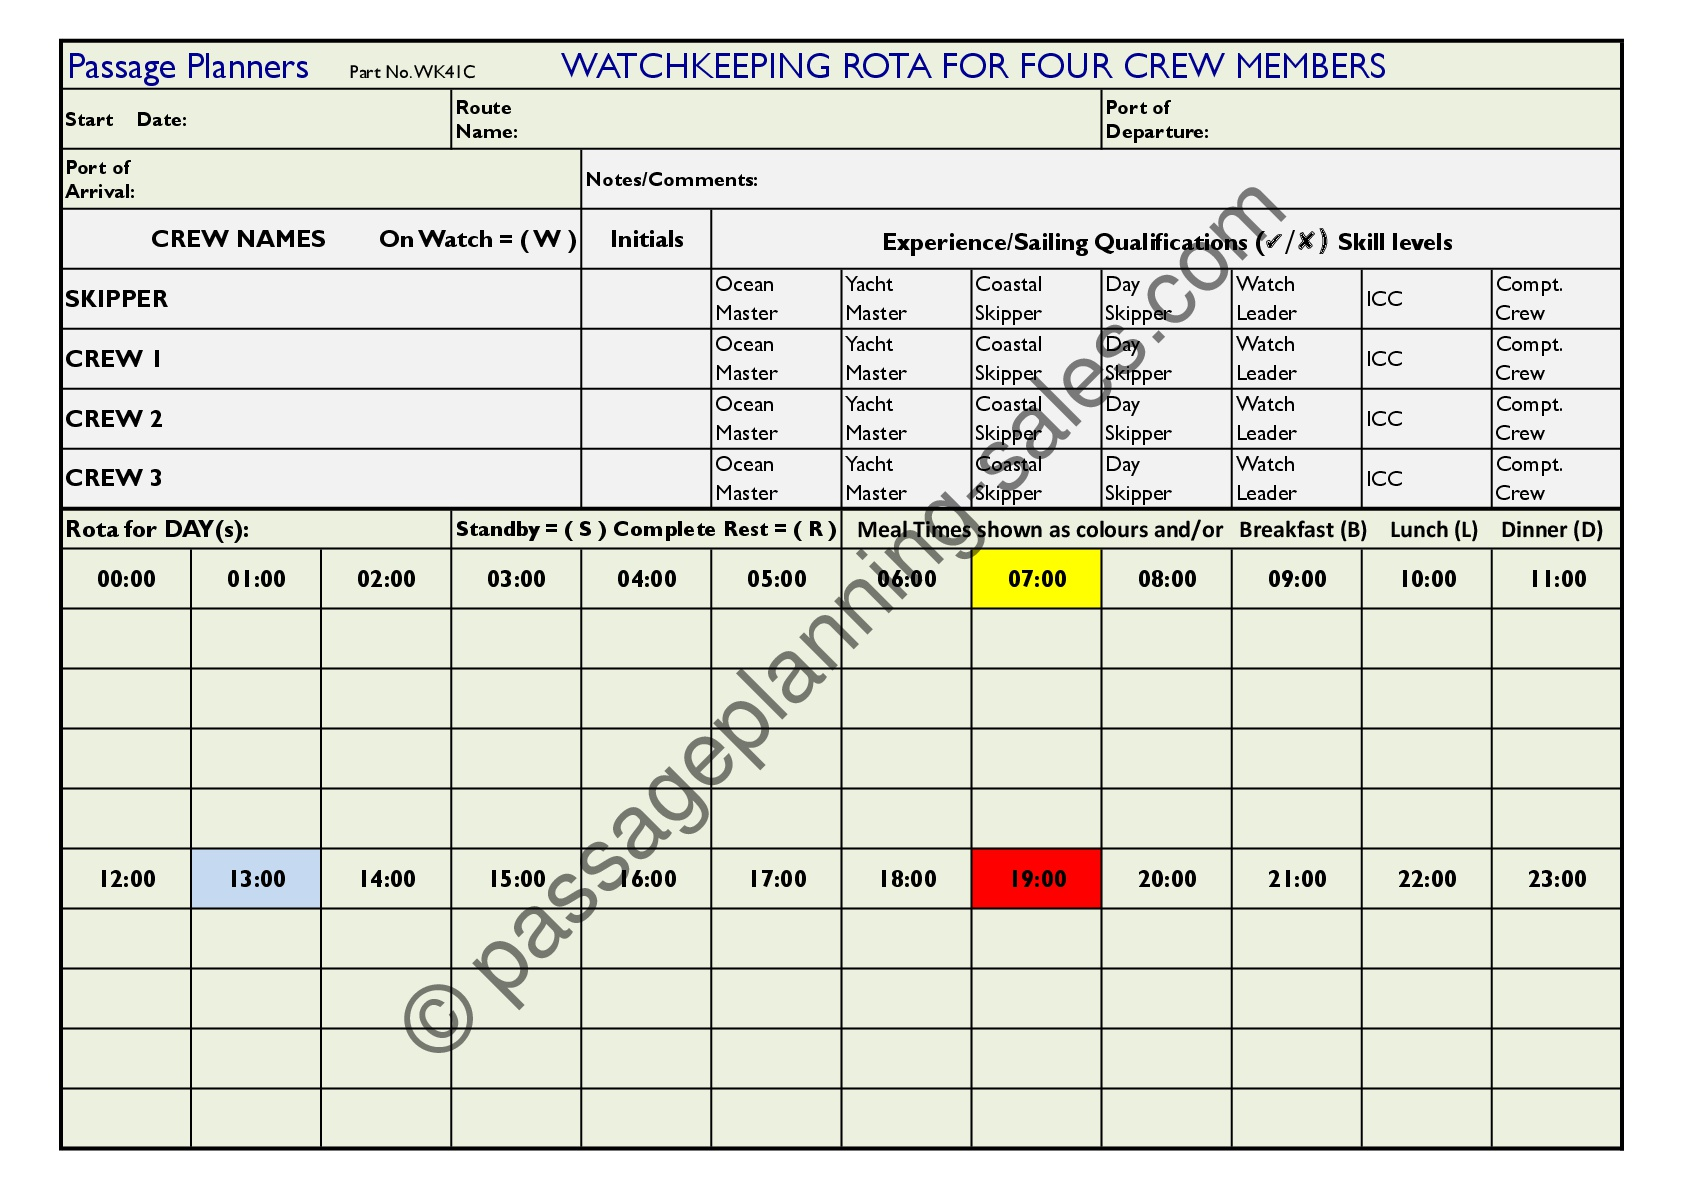 Watchkeeping Rota form for Four Crew Members (Size A4)